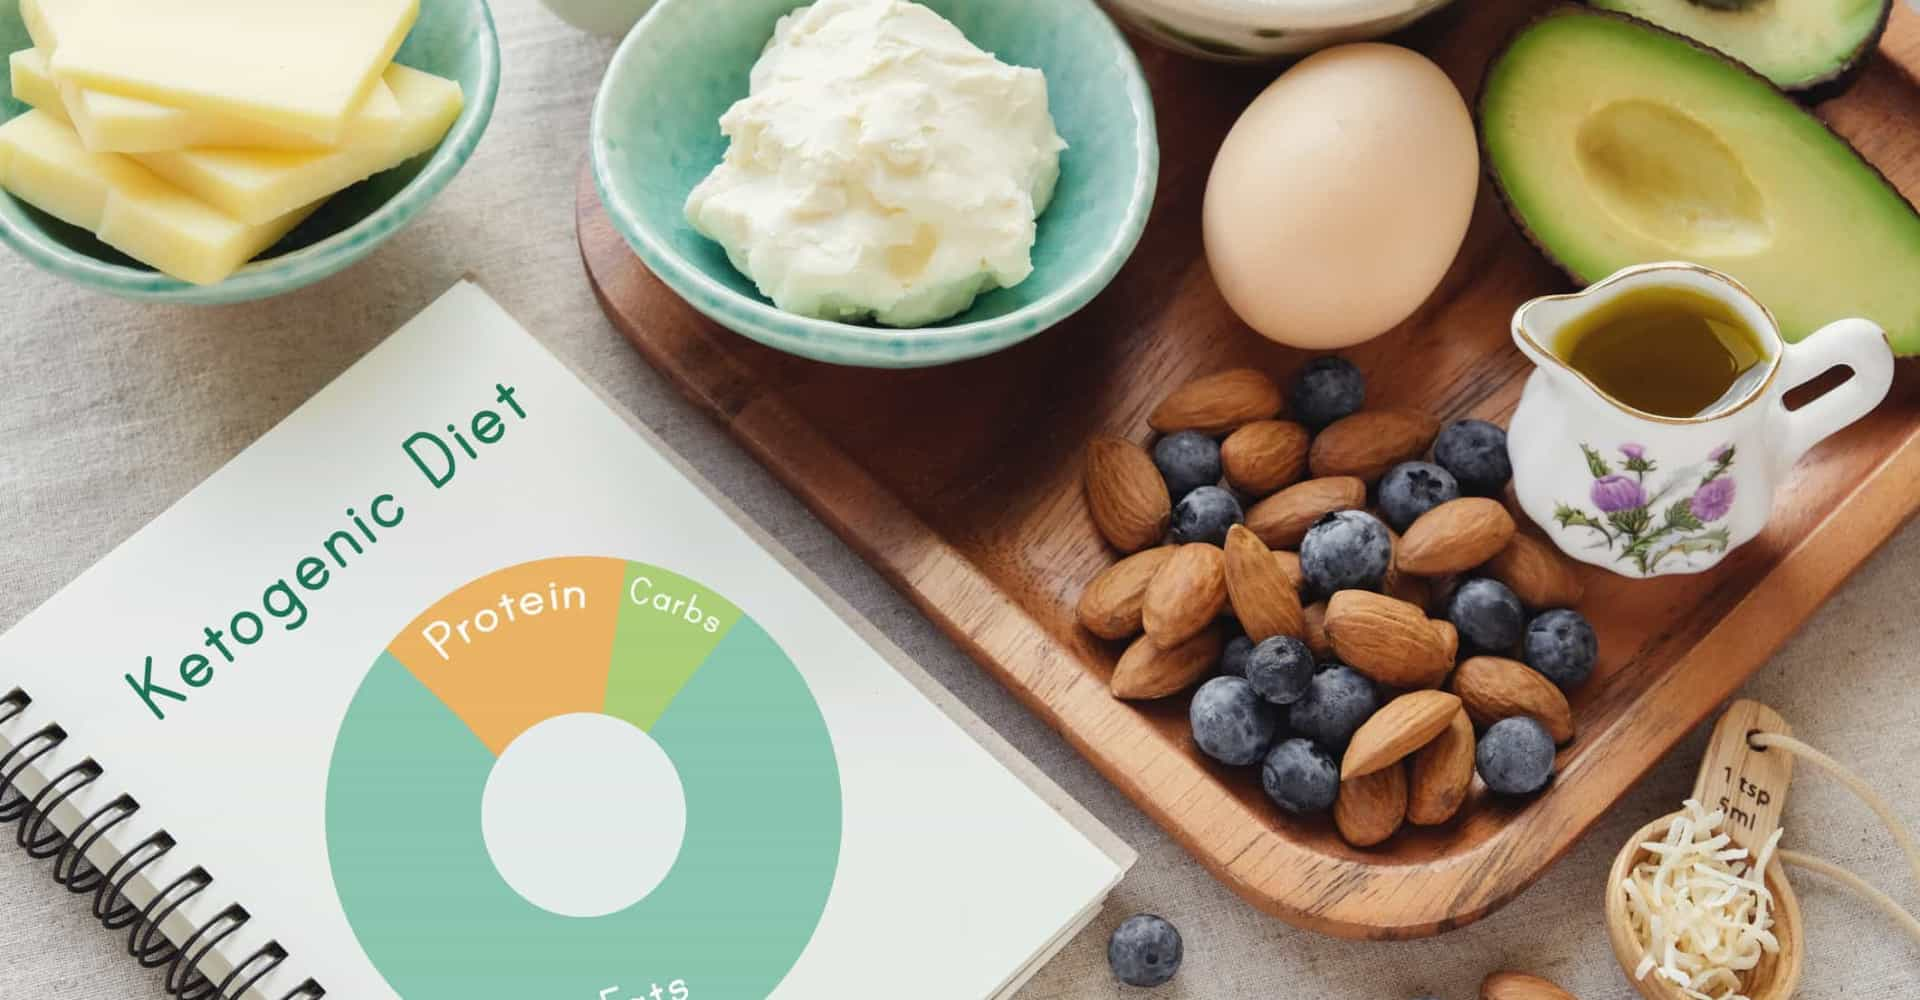 This ketogenic diet documentary may change your routine